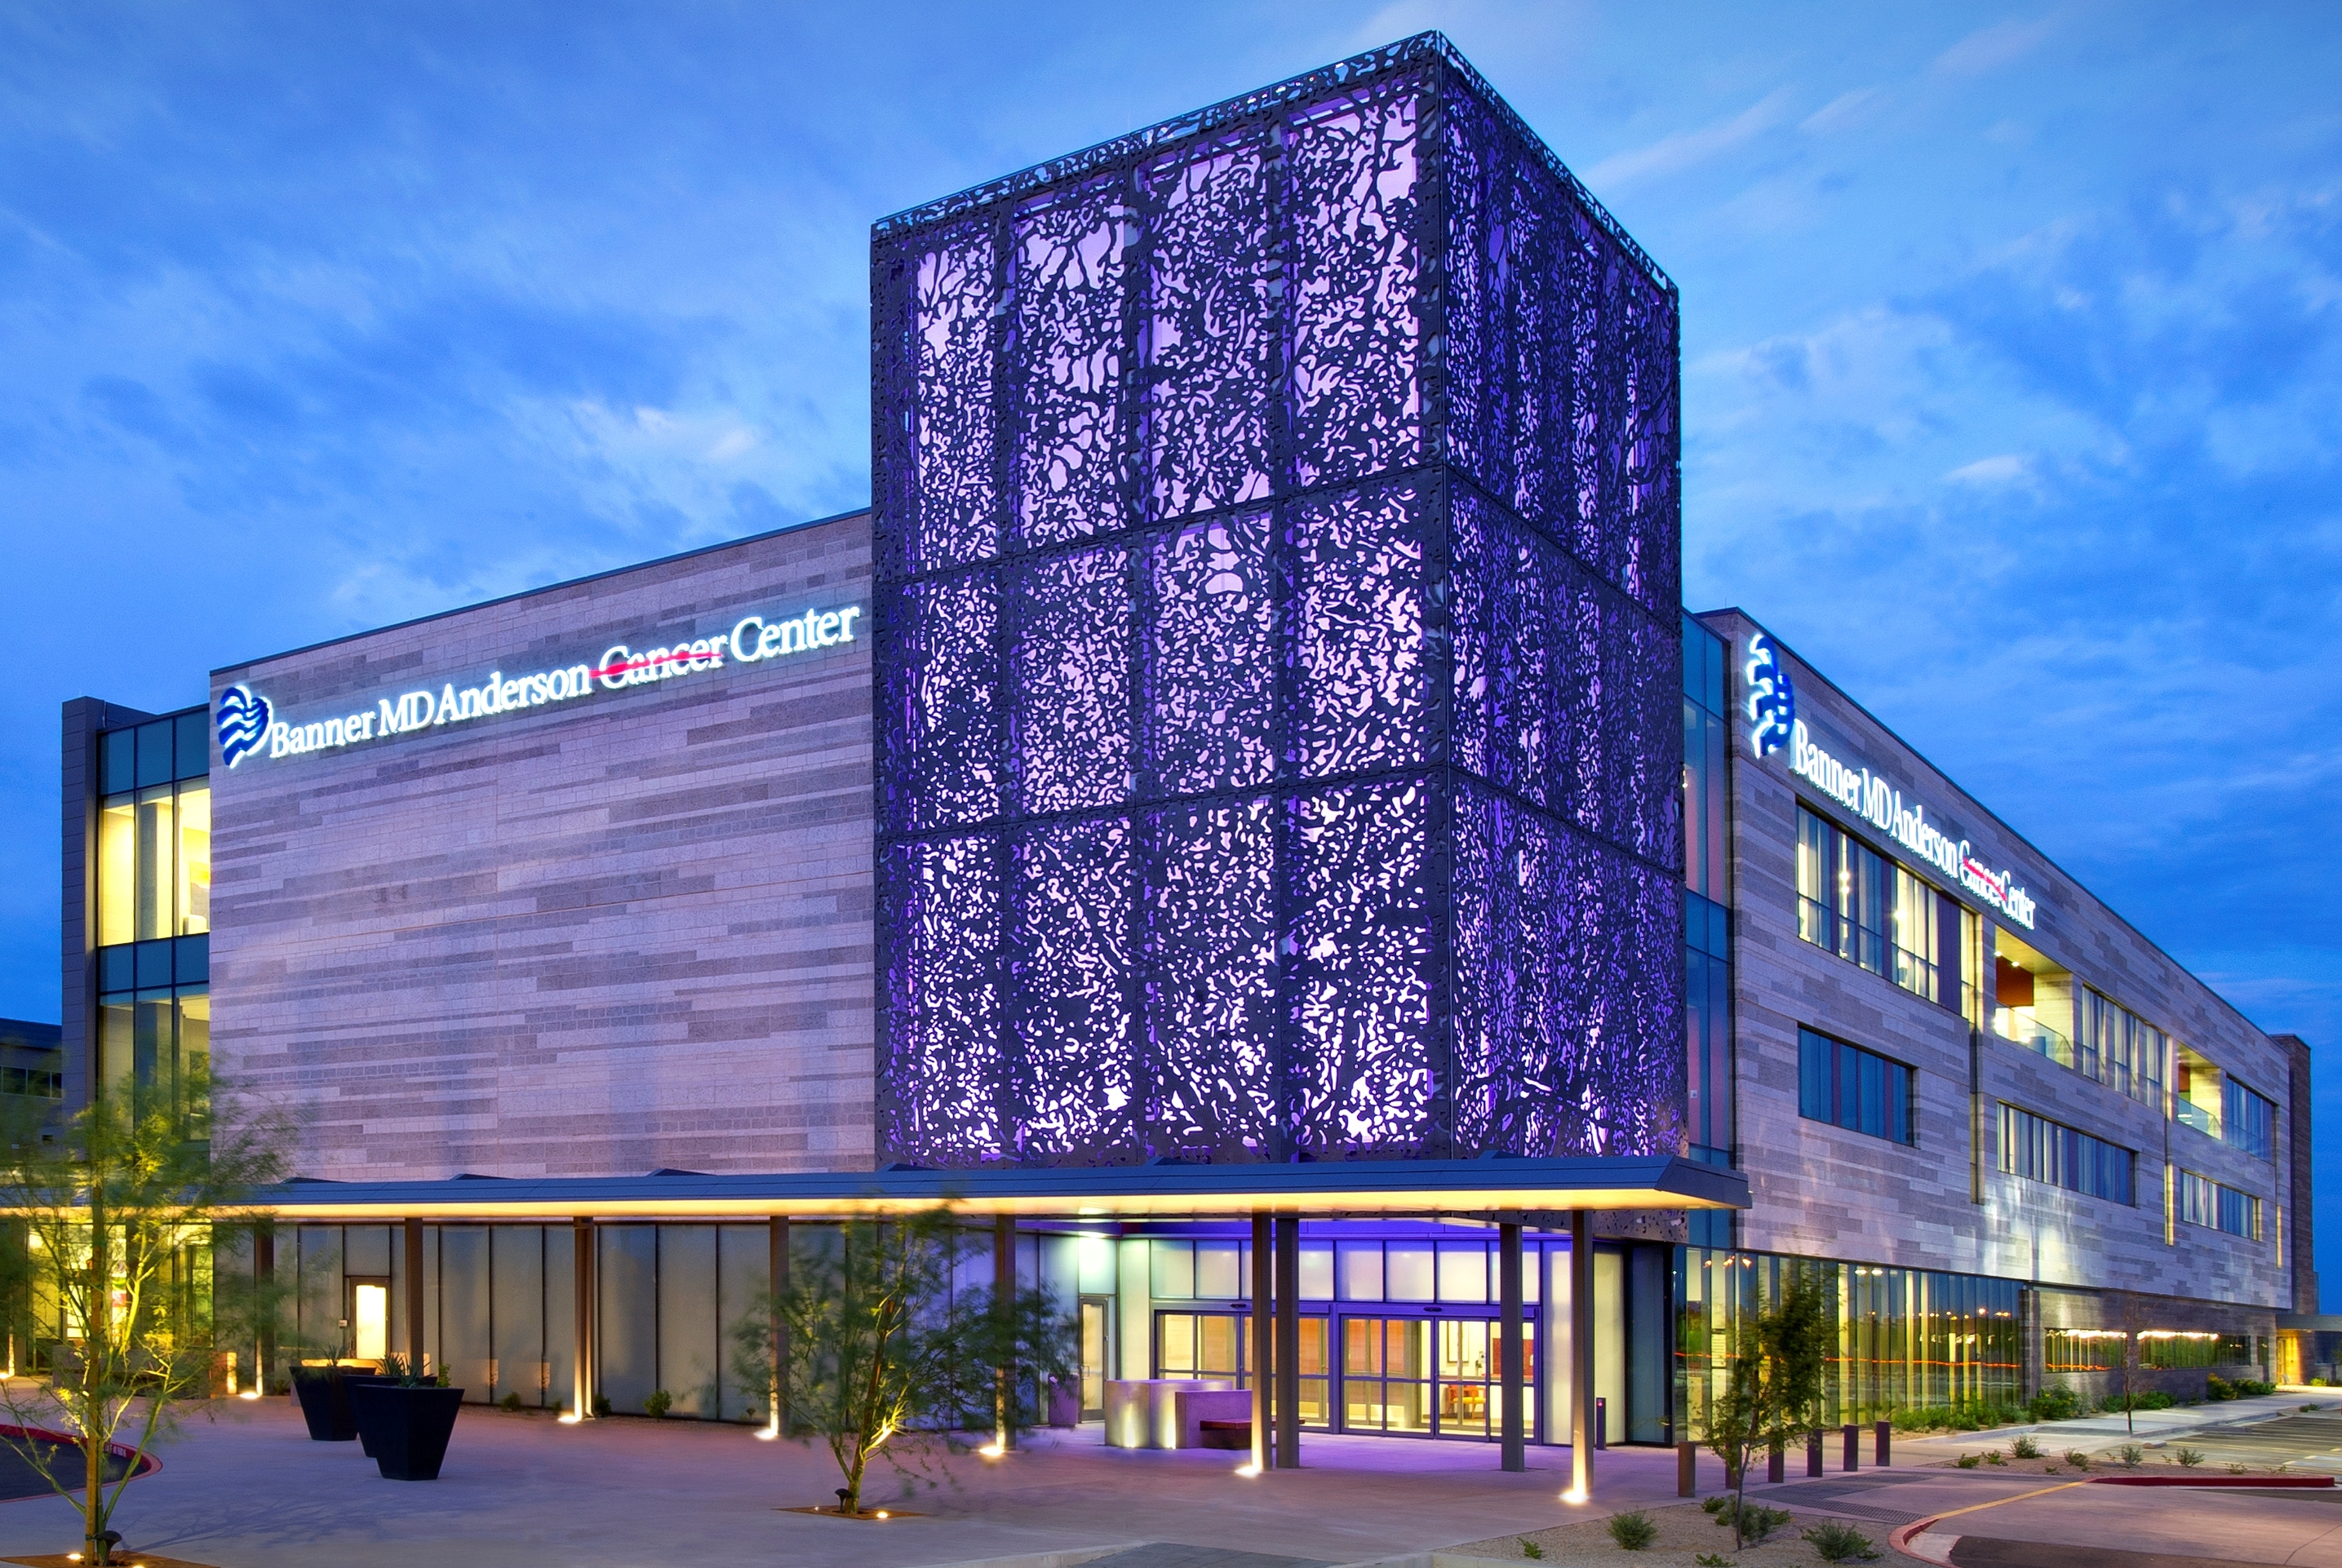 Banner MD Anderson exterior